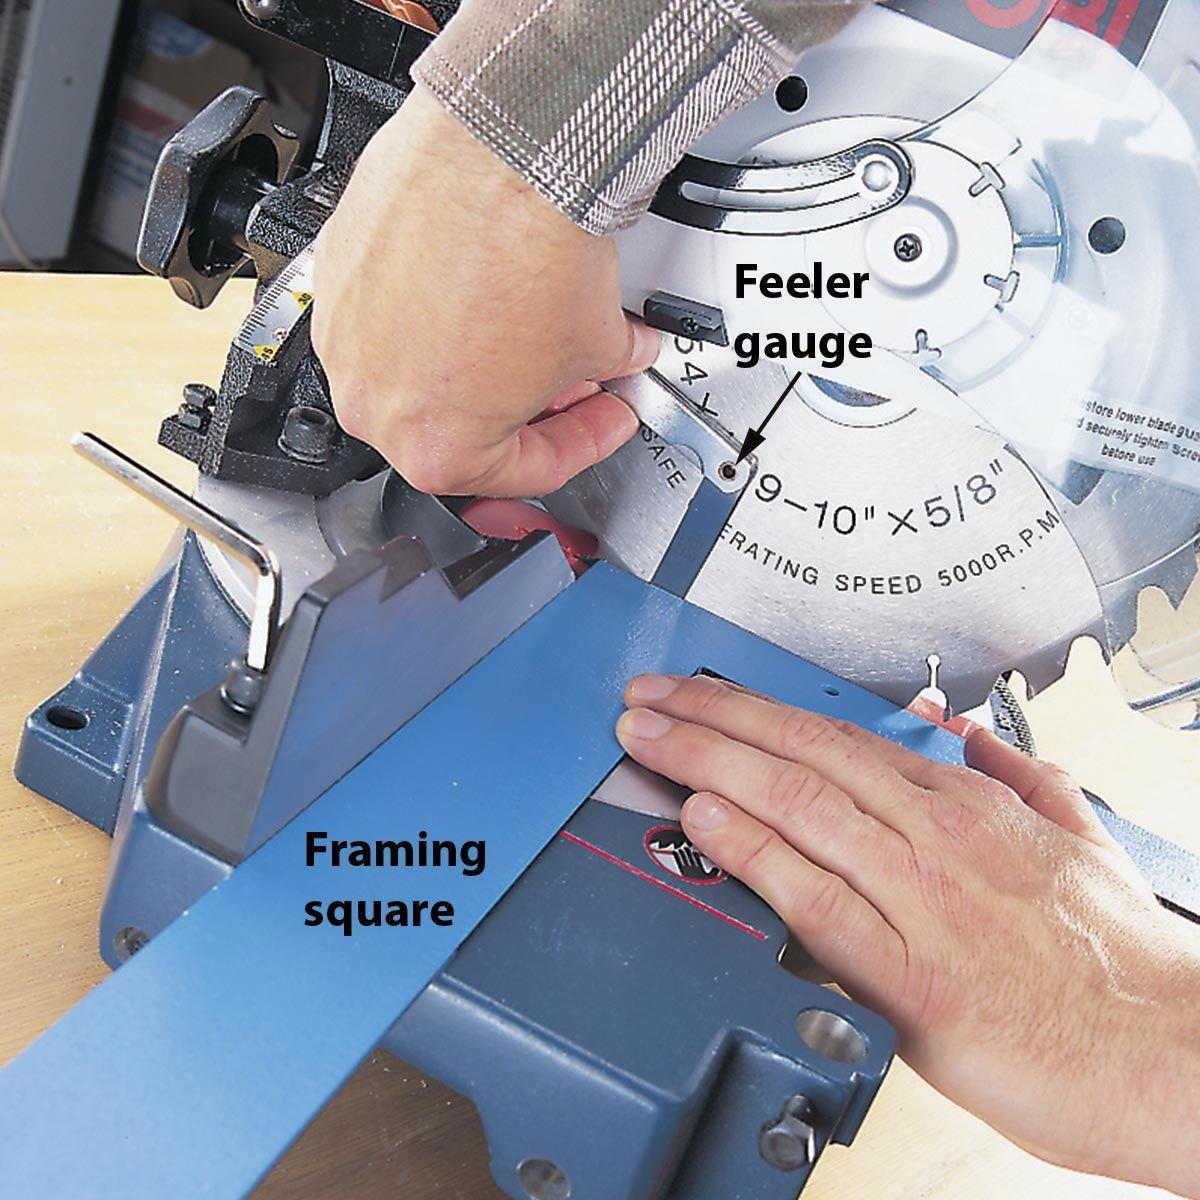 If Your Miter Saw Isnt Cutting Square The Fix Is Easy Unplug The